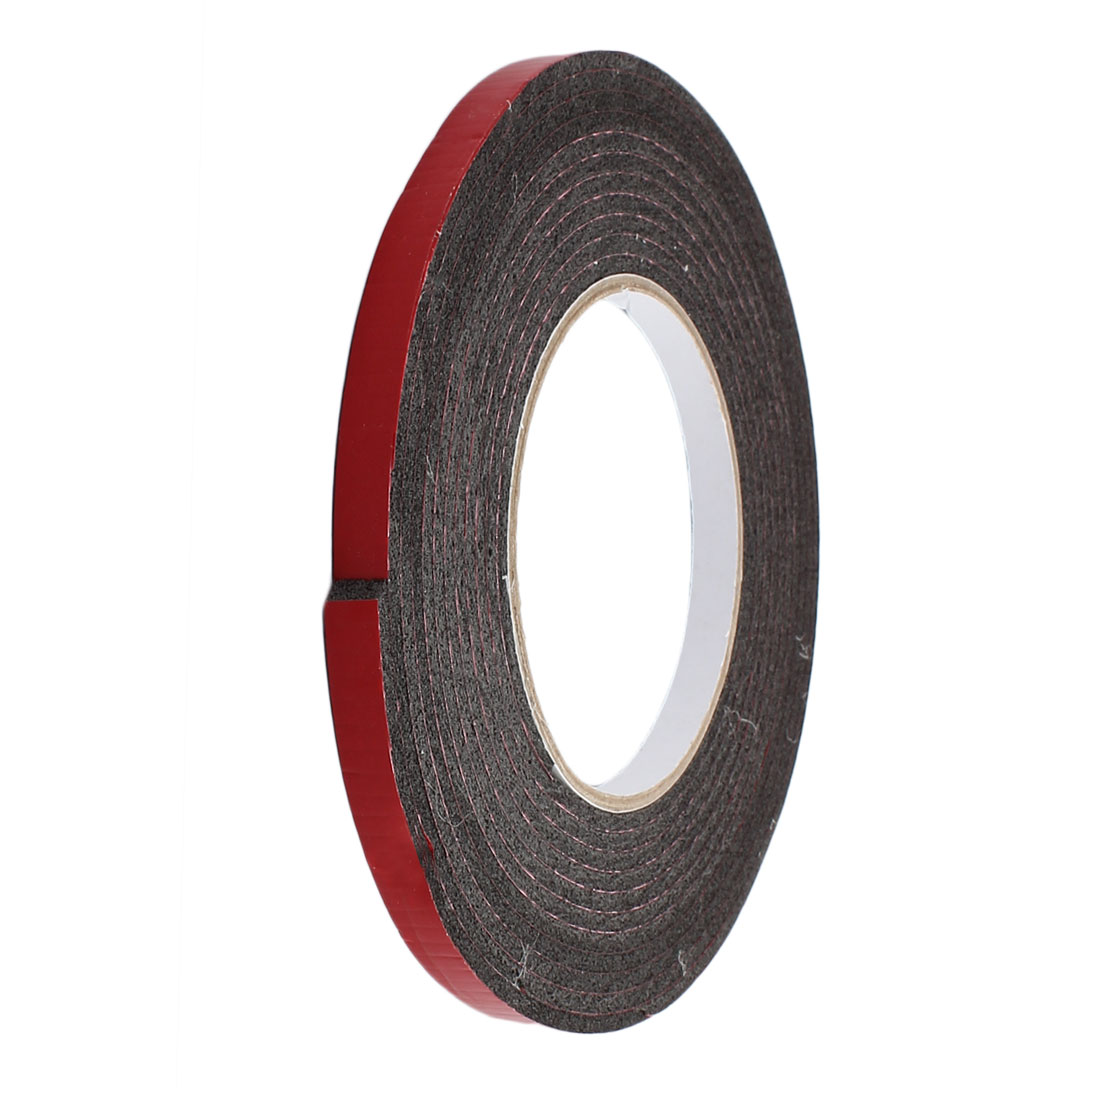 8mm x 3mm Single Sided Self Adhesive Shockproof Sponge Foam Tape 5M Length Red